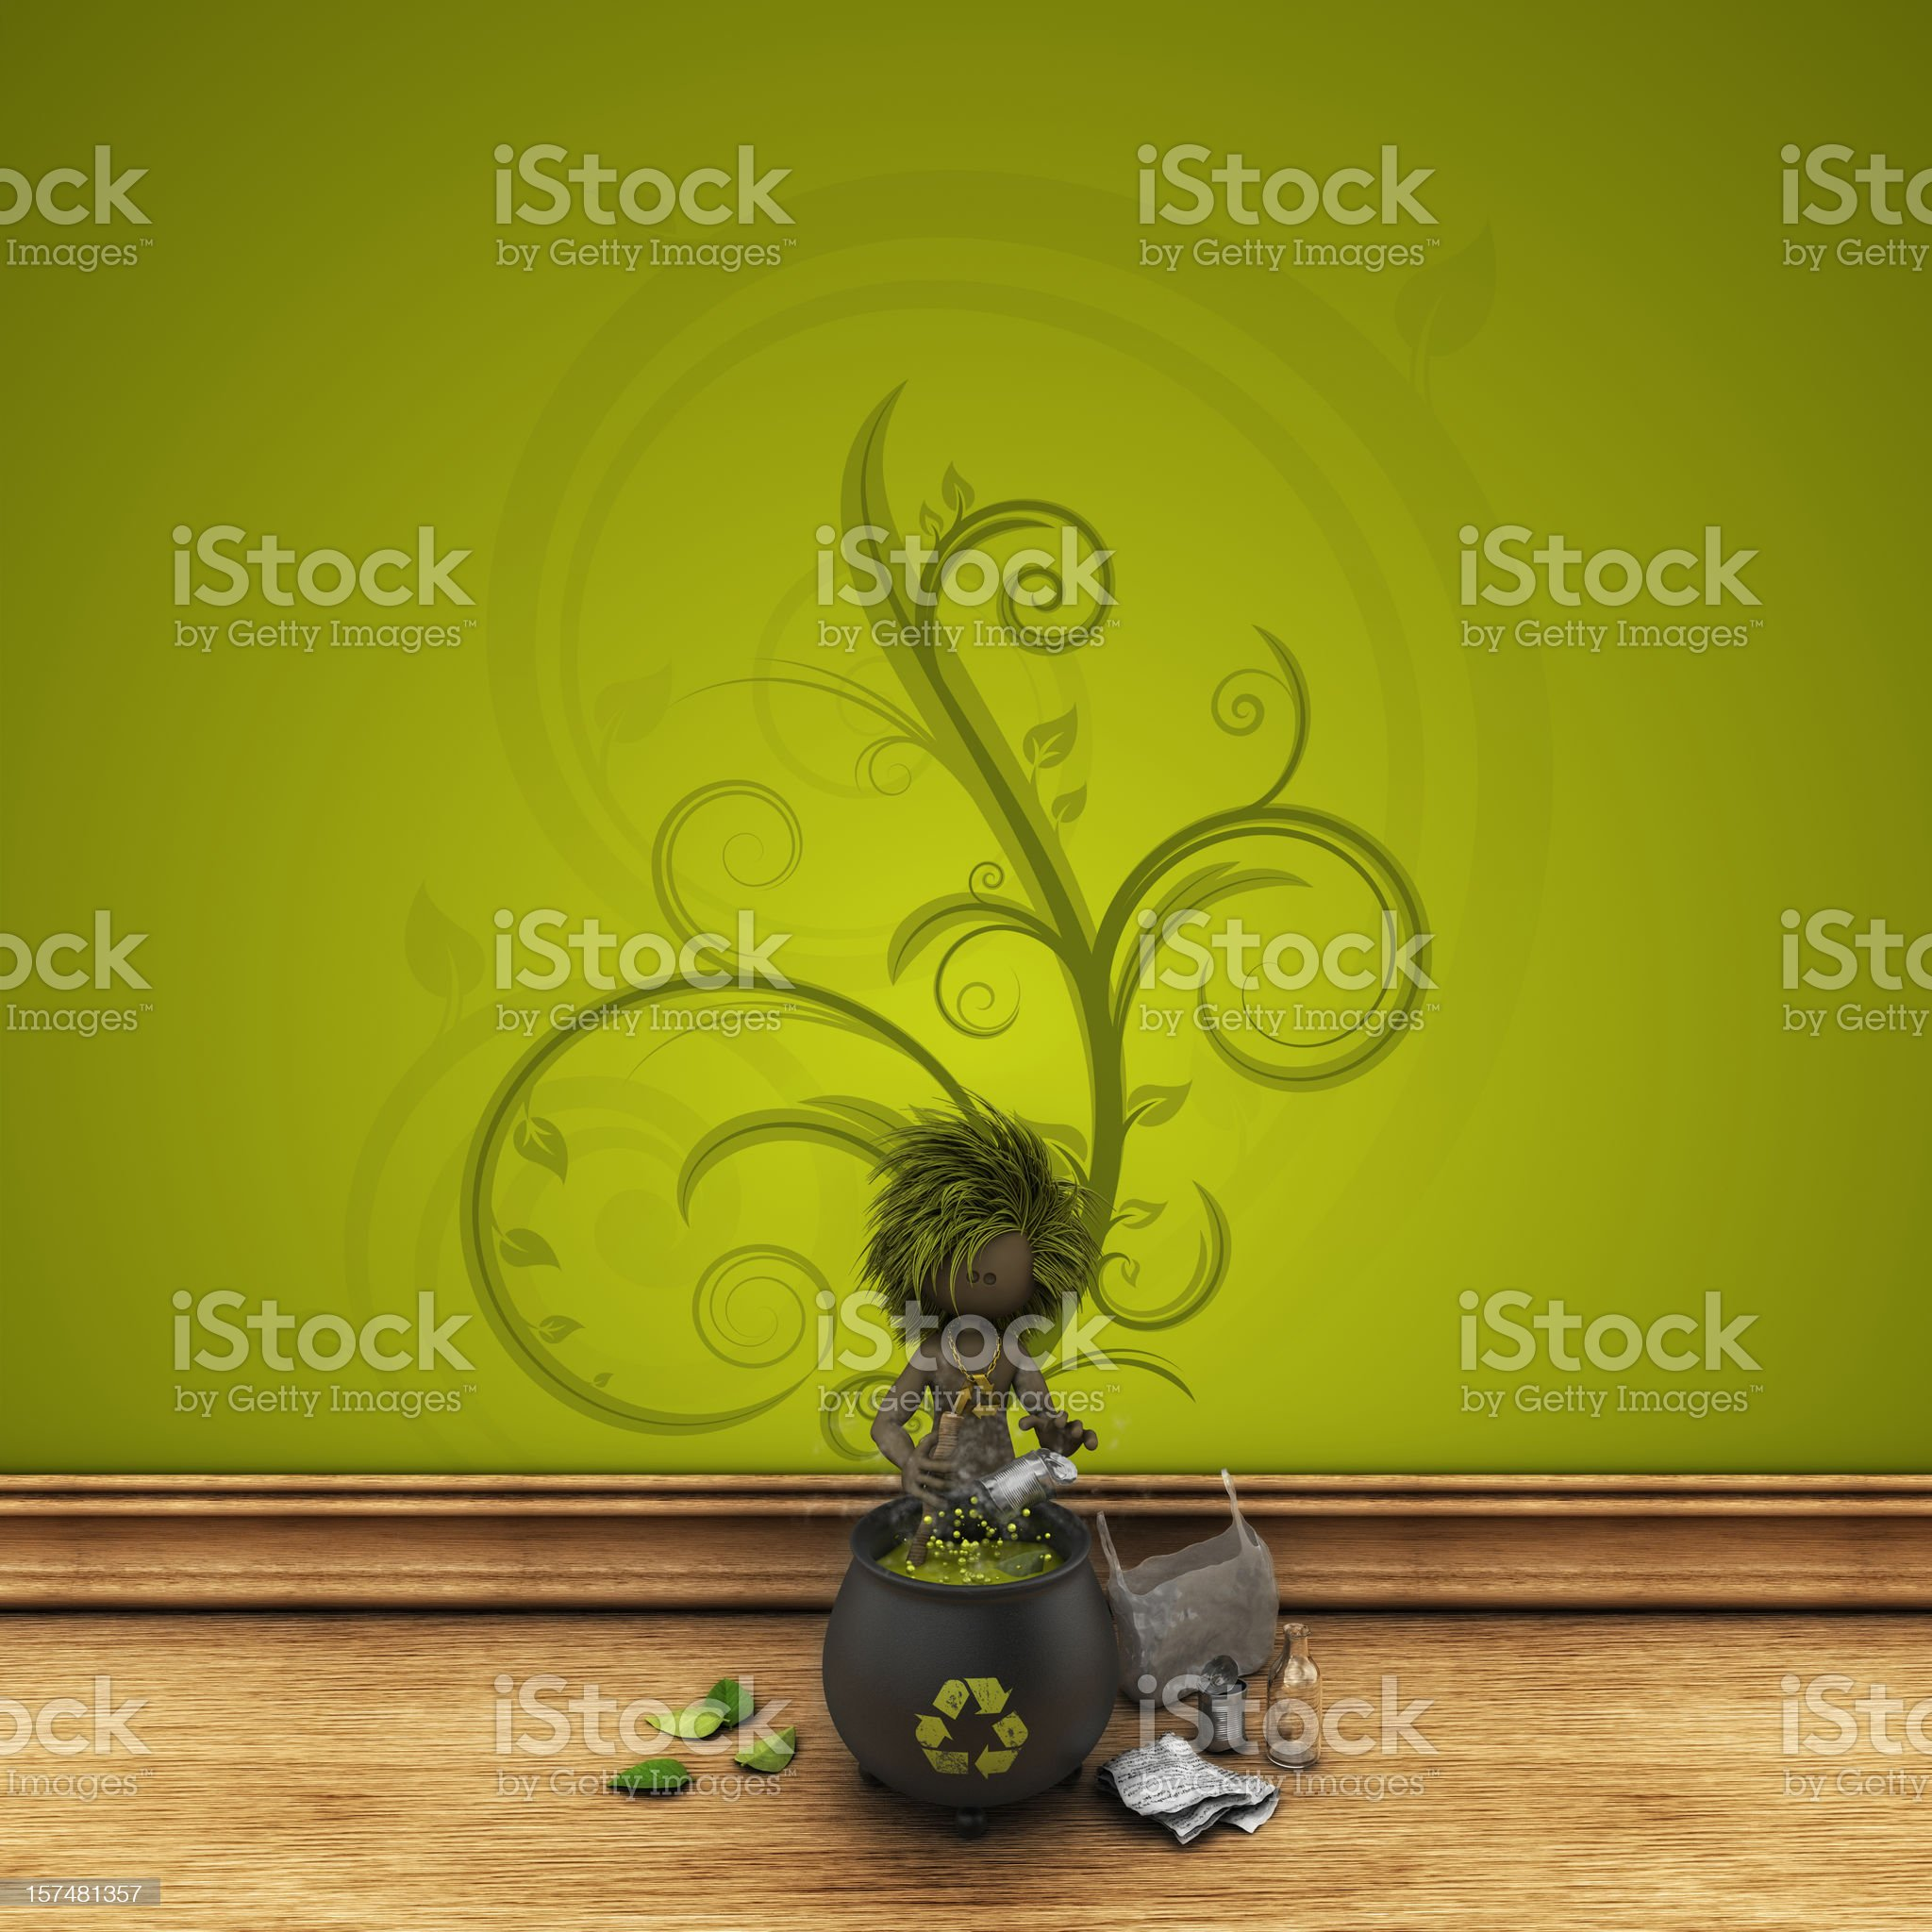 home recycling process royalty-free stock vector art